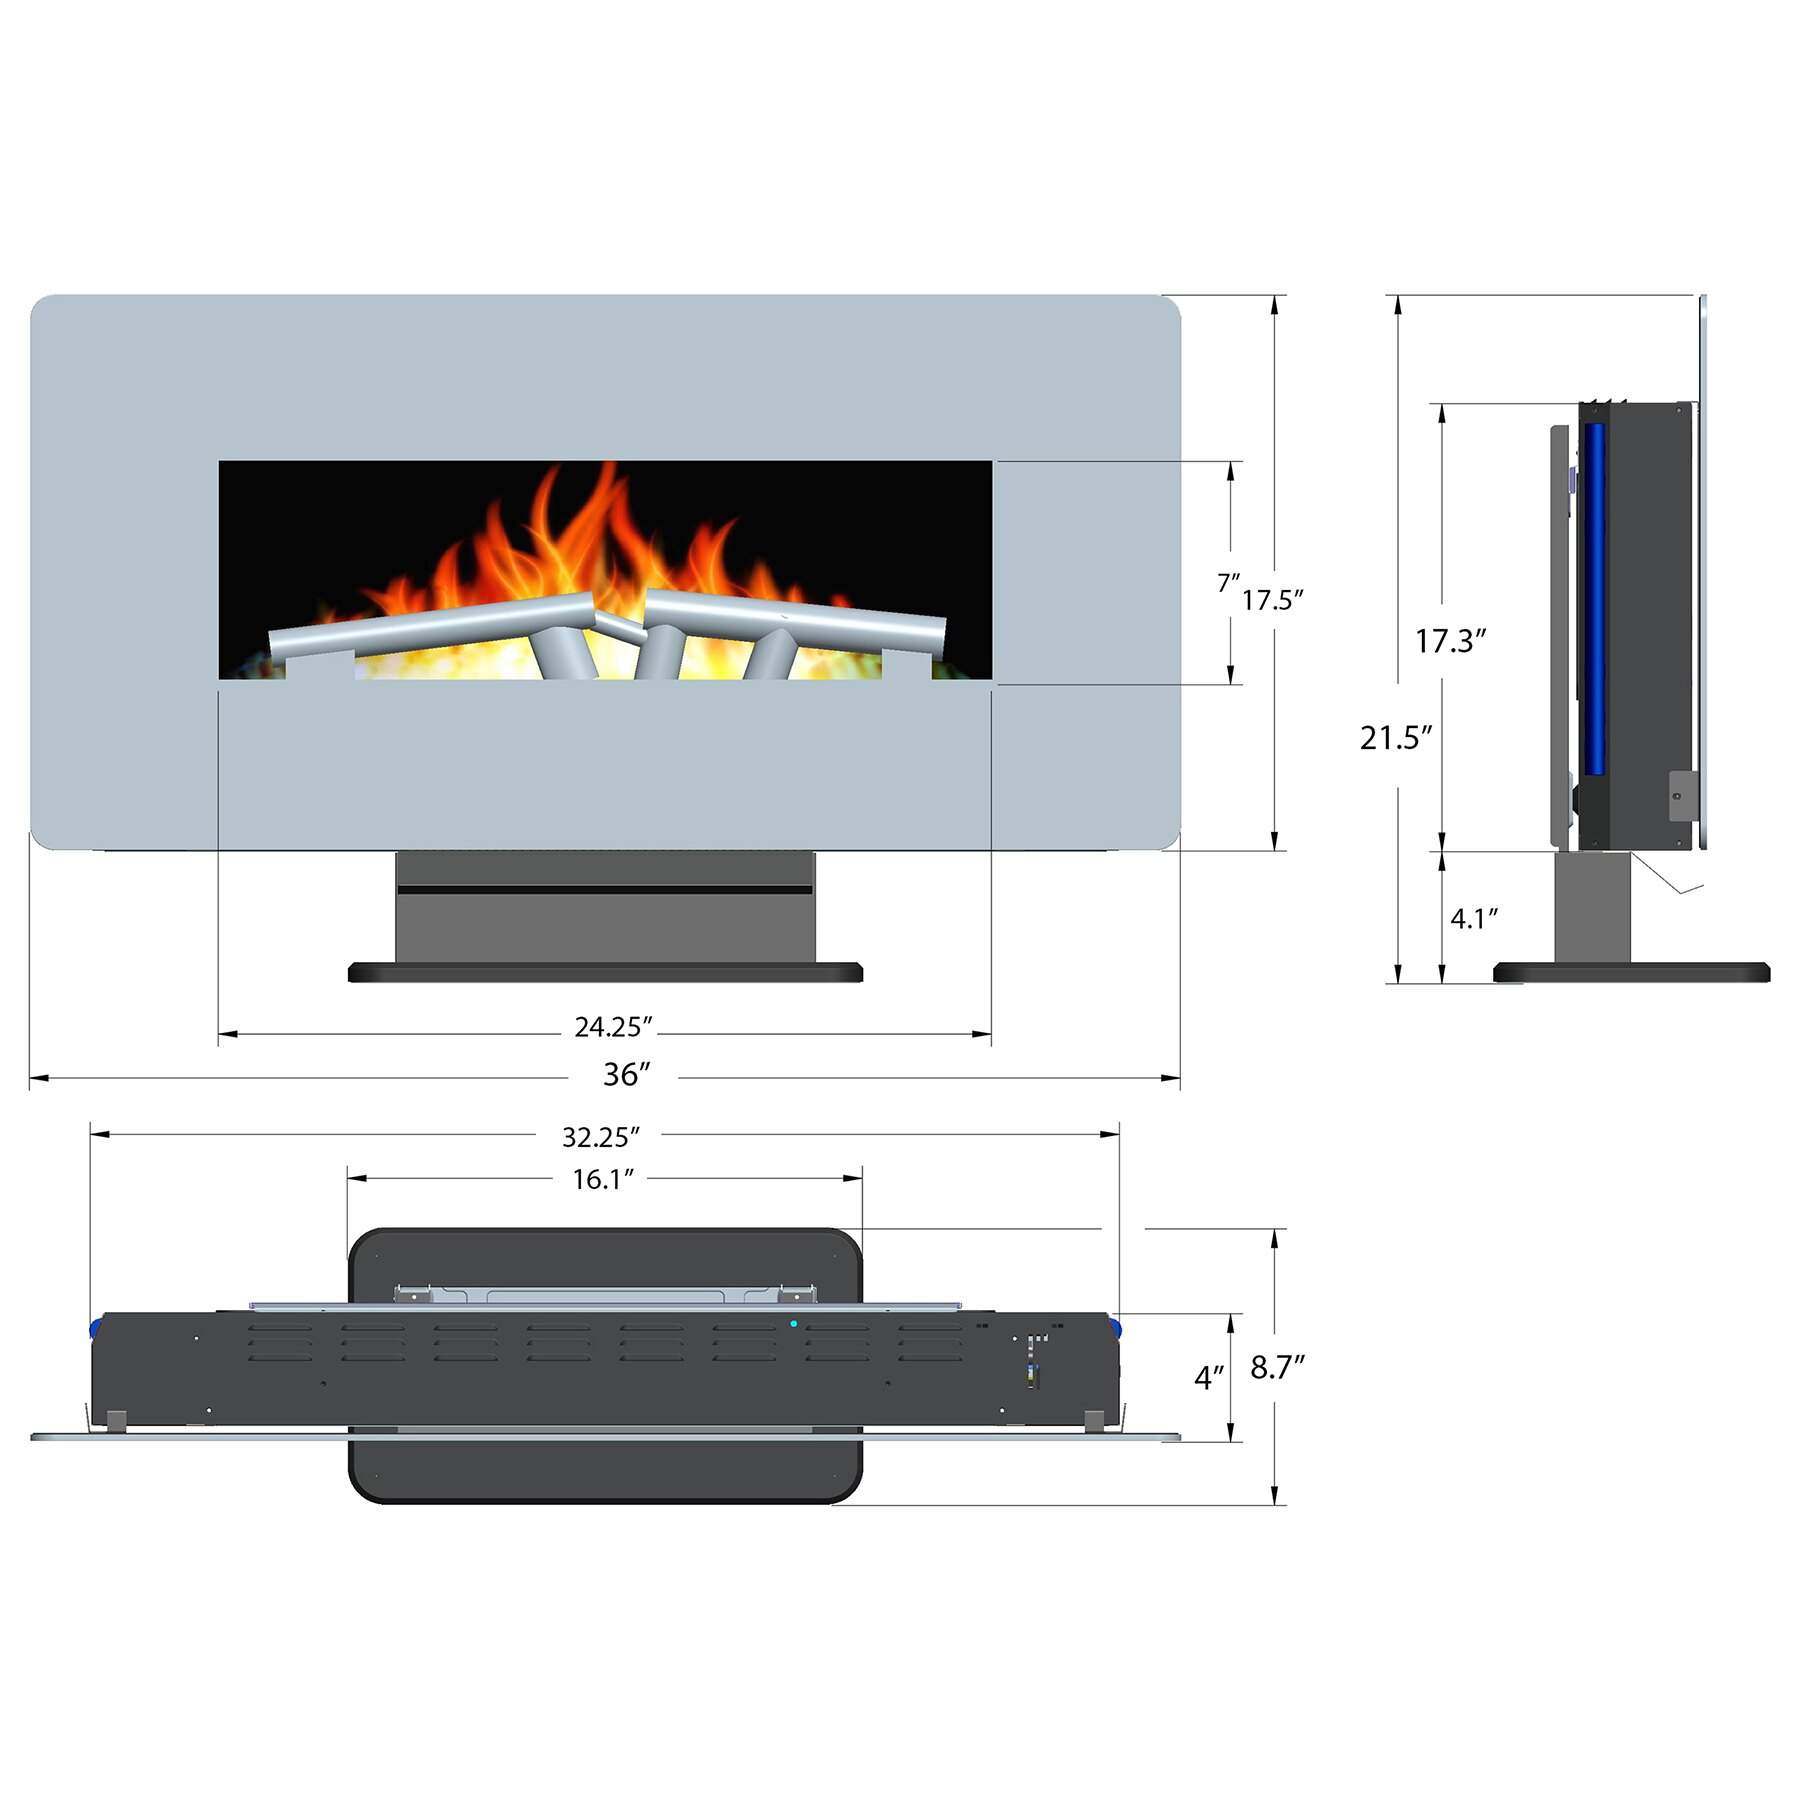 "AKDY 36"" Freestanding Wall Mount Electric Fireplace 3-in-1 Fuel Bed w/ Remote Control 1"